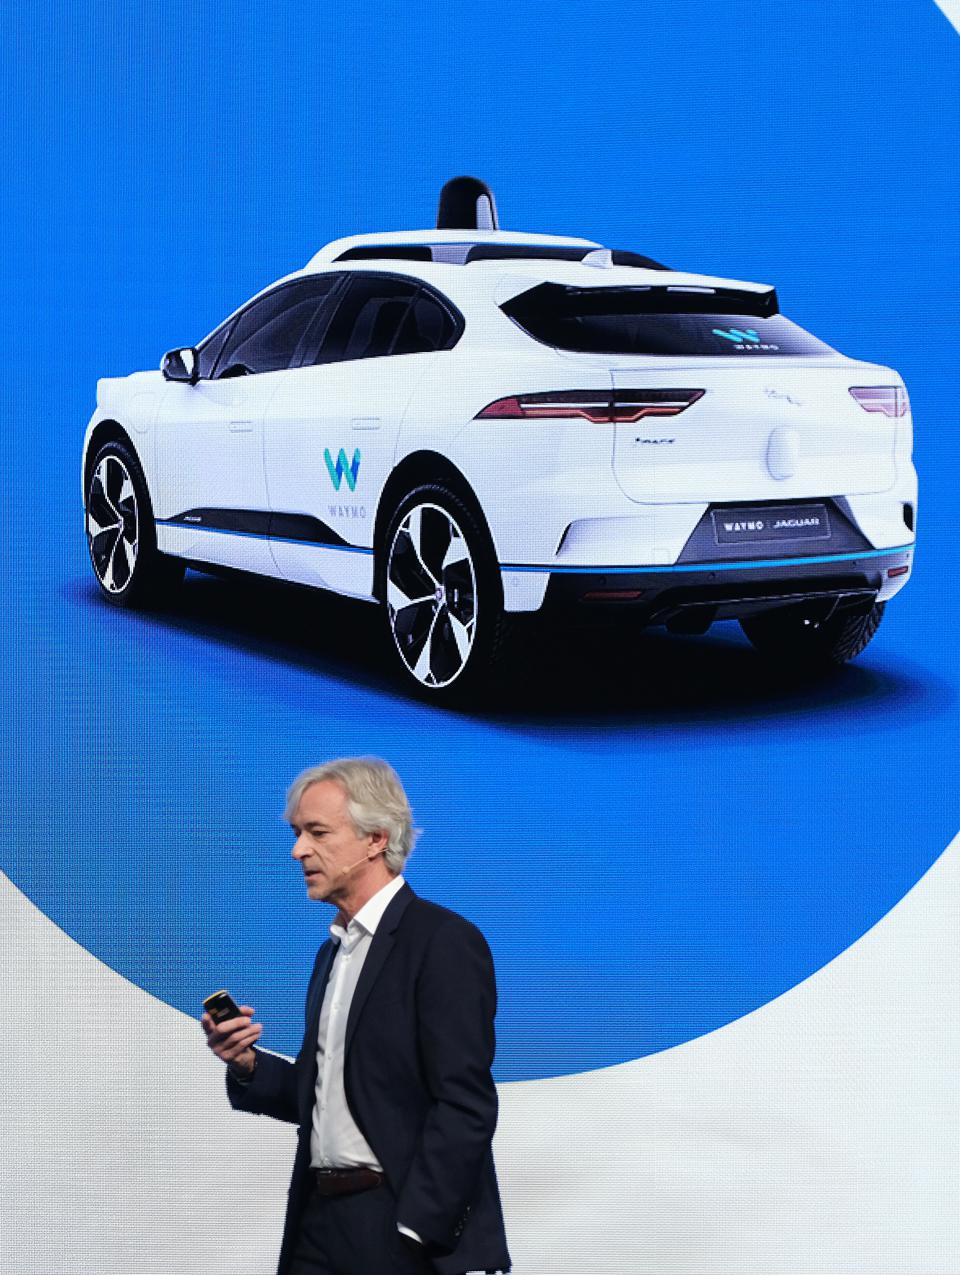 Waymo CEO John Krafcik at the opening event of the 2019 Frankfurt Auto Show in September 2019.